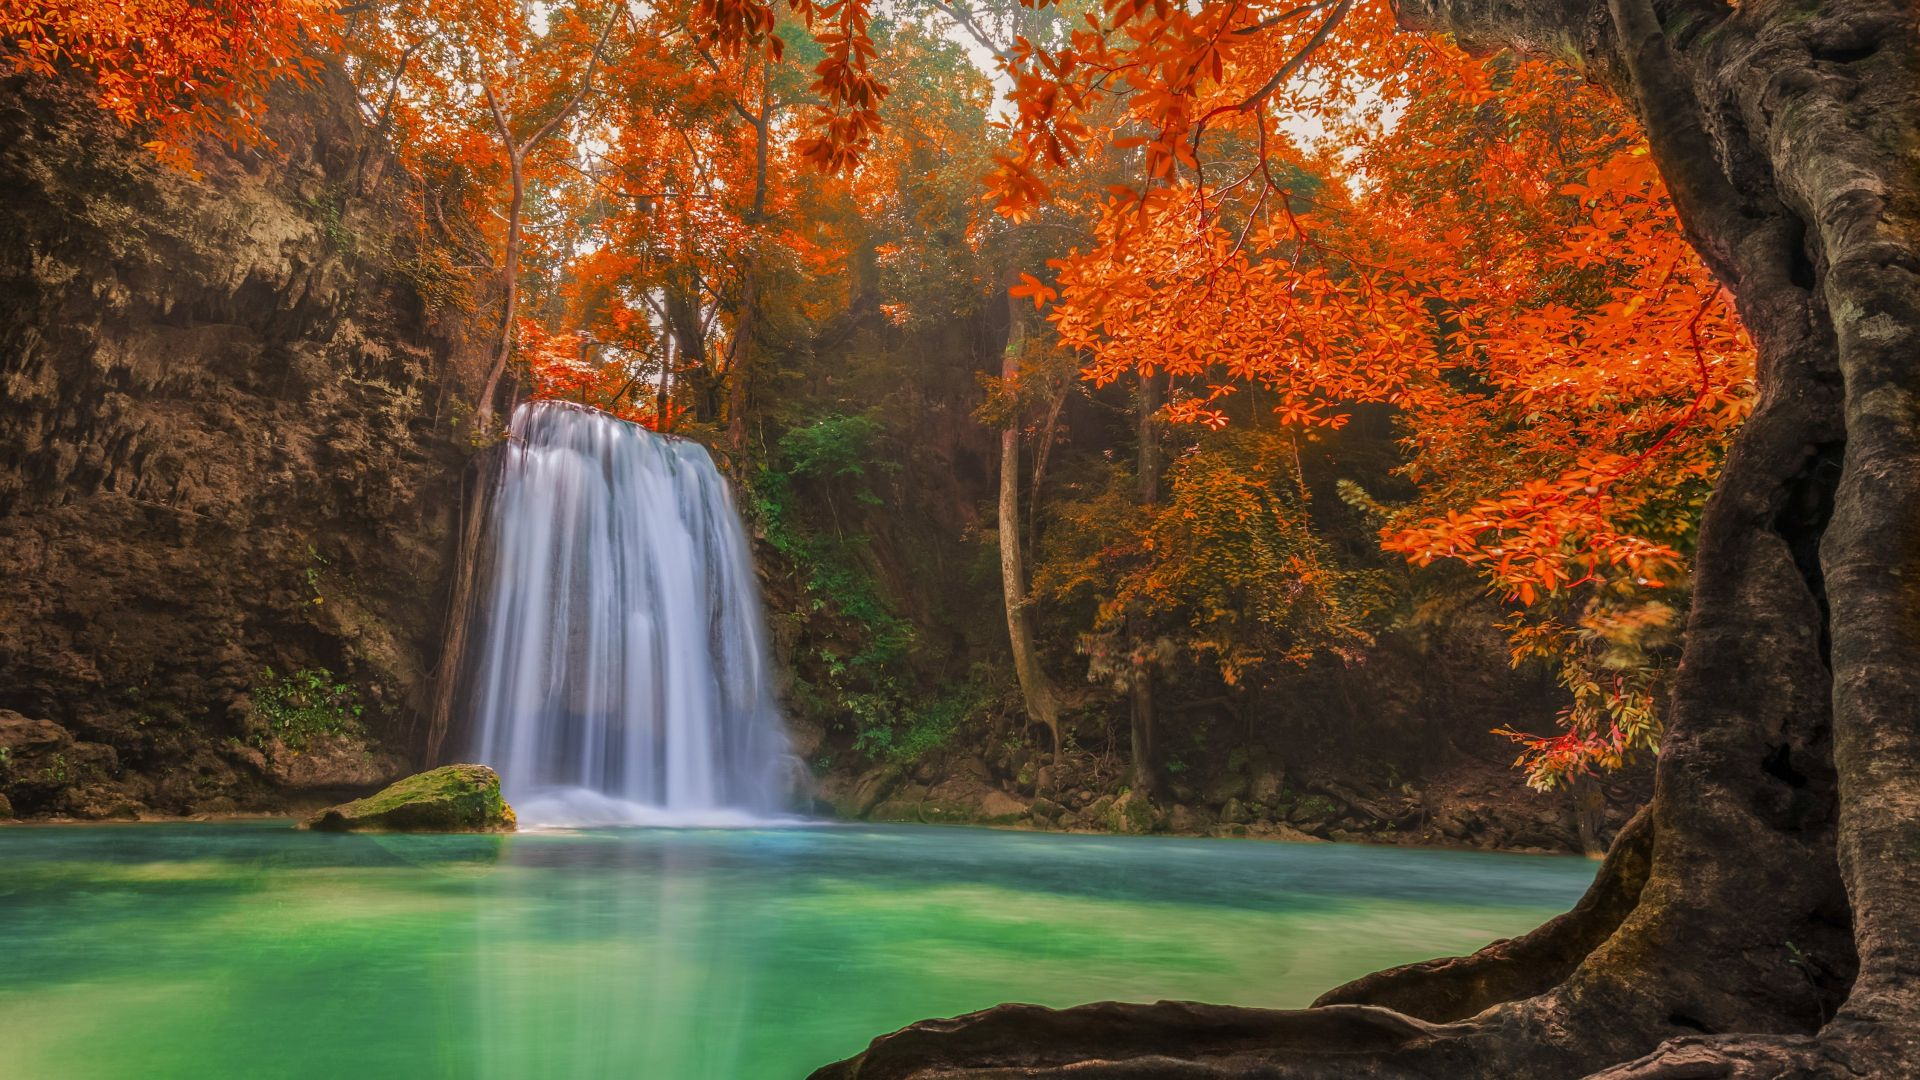 Waterfall, Thailand, travel, tourism, River, autumn